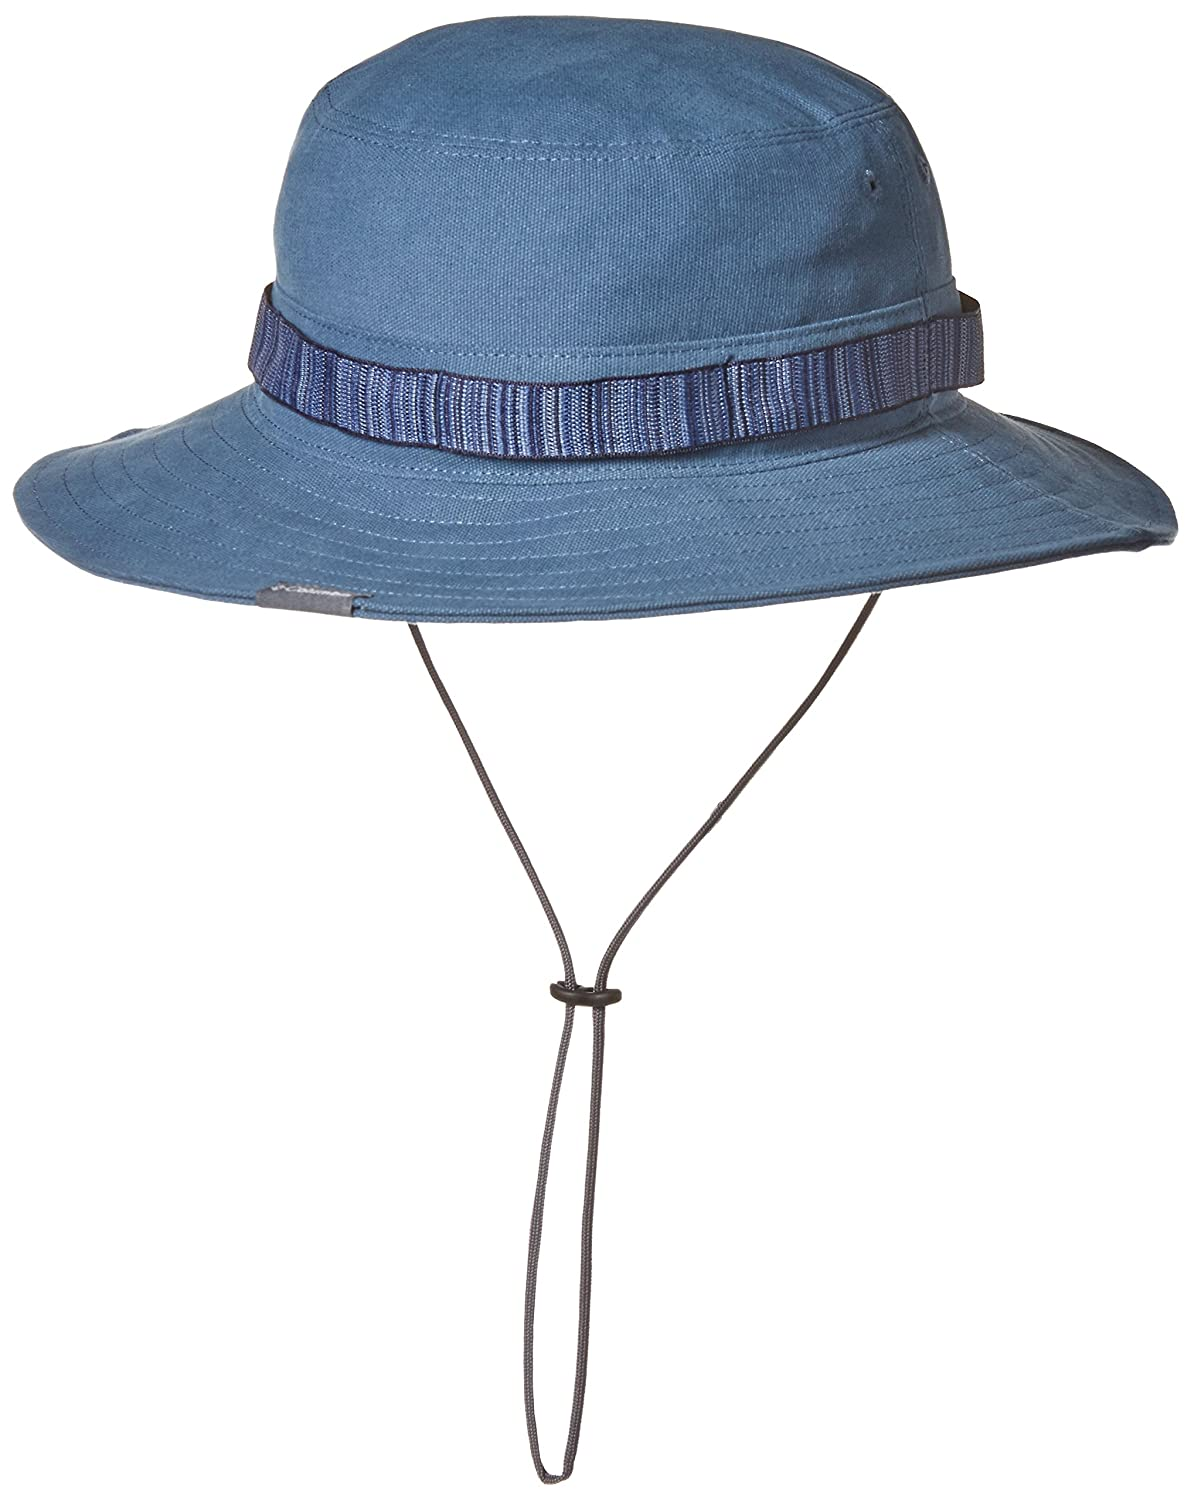 f4b69fc7adf3a Columbia ROC Bucket Hat at Amazon Men s Clothing store